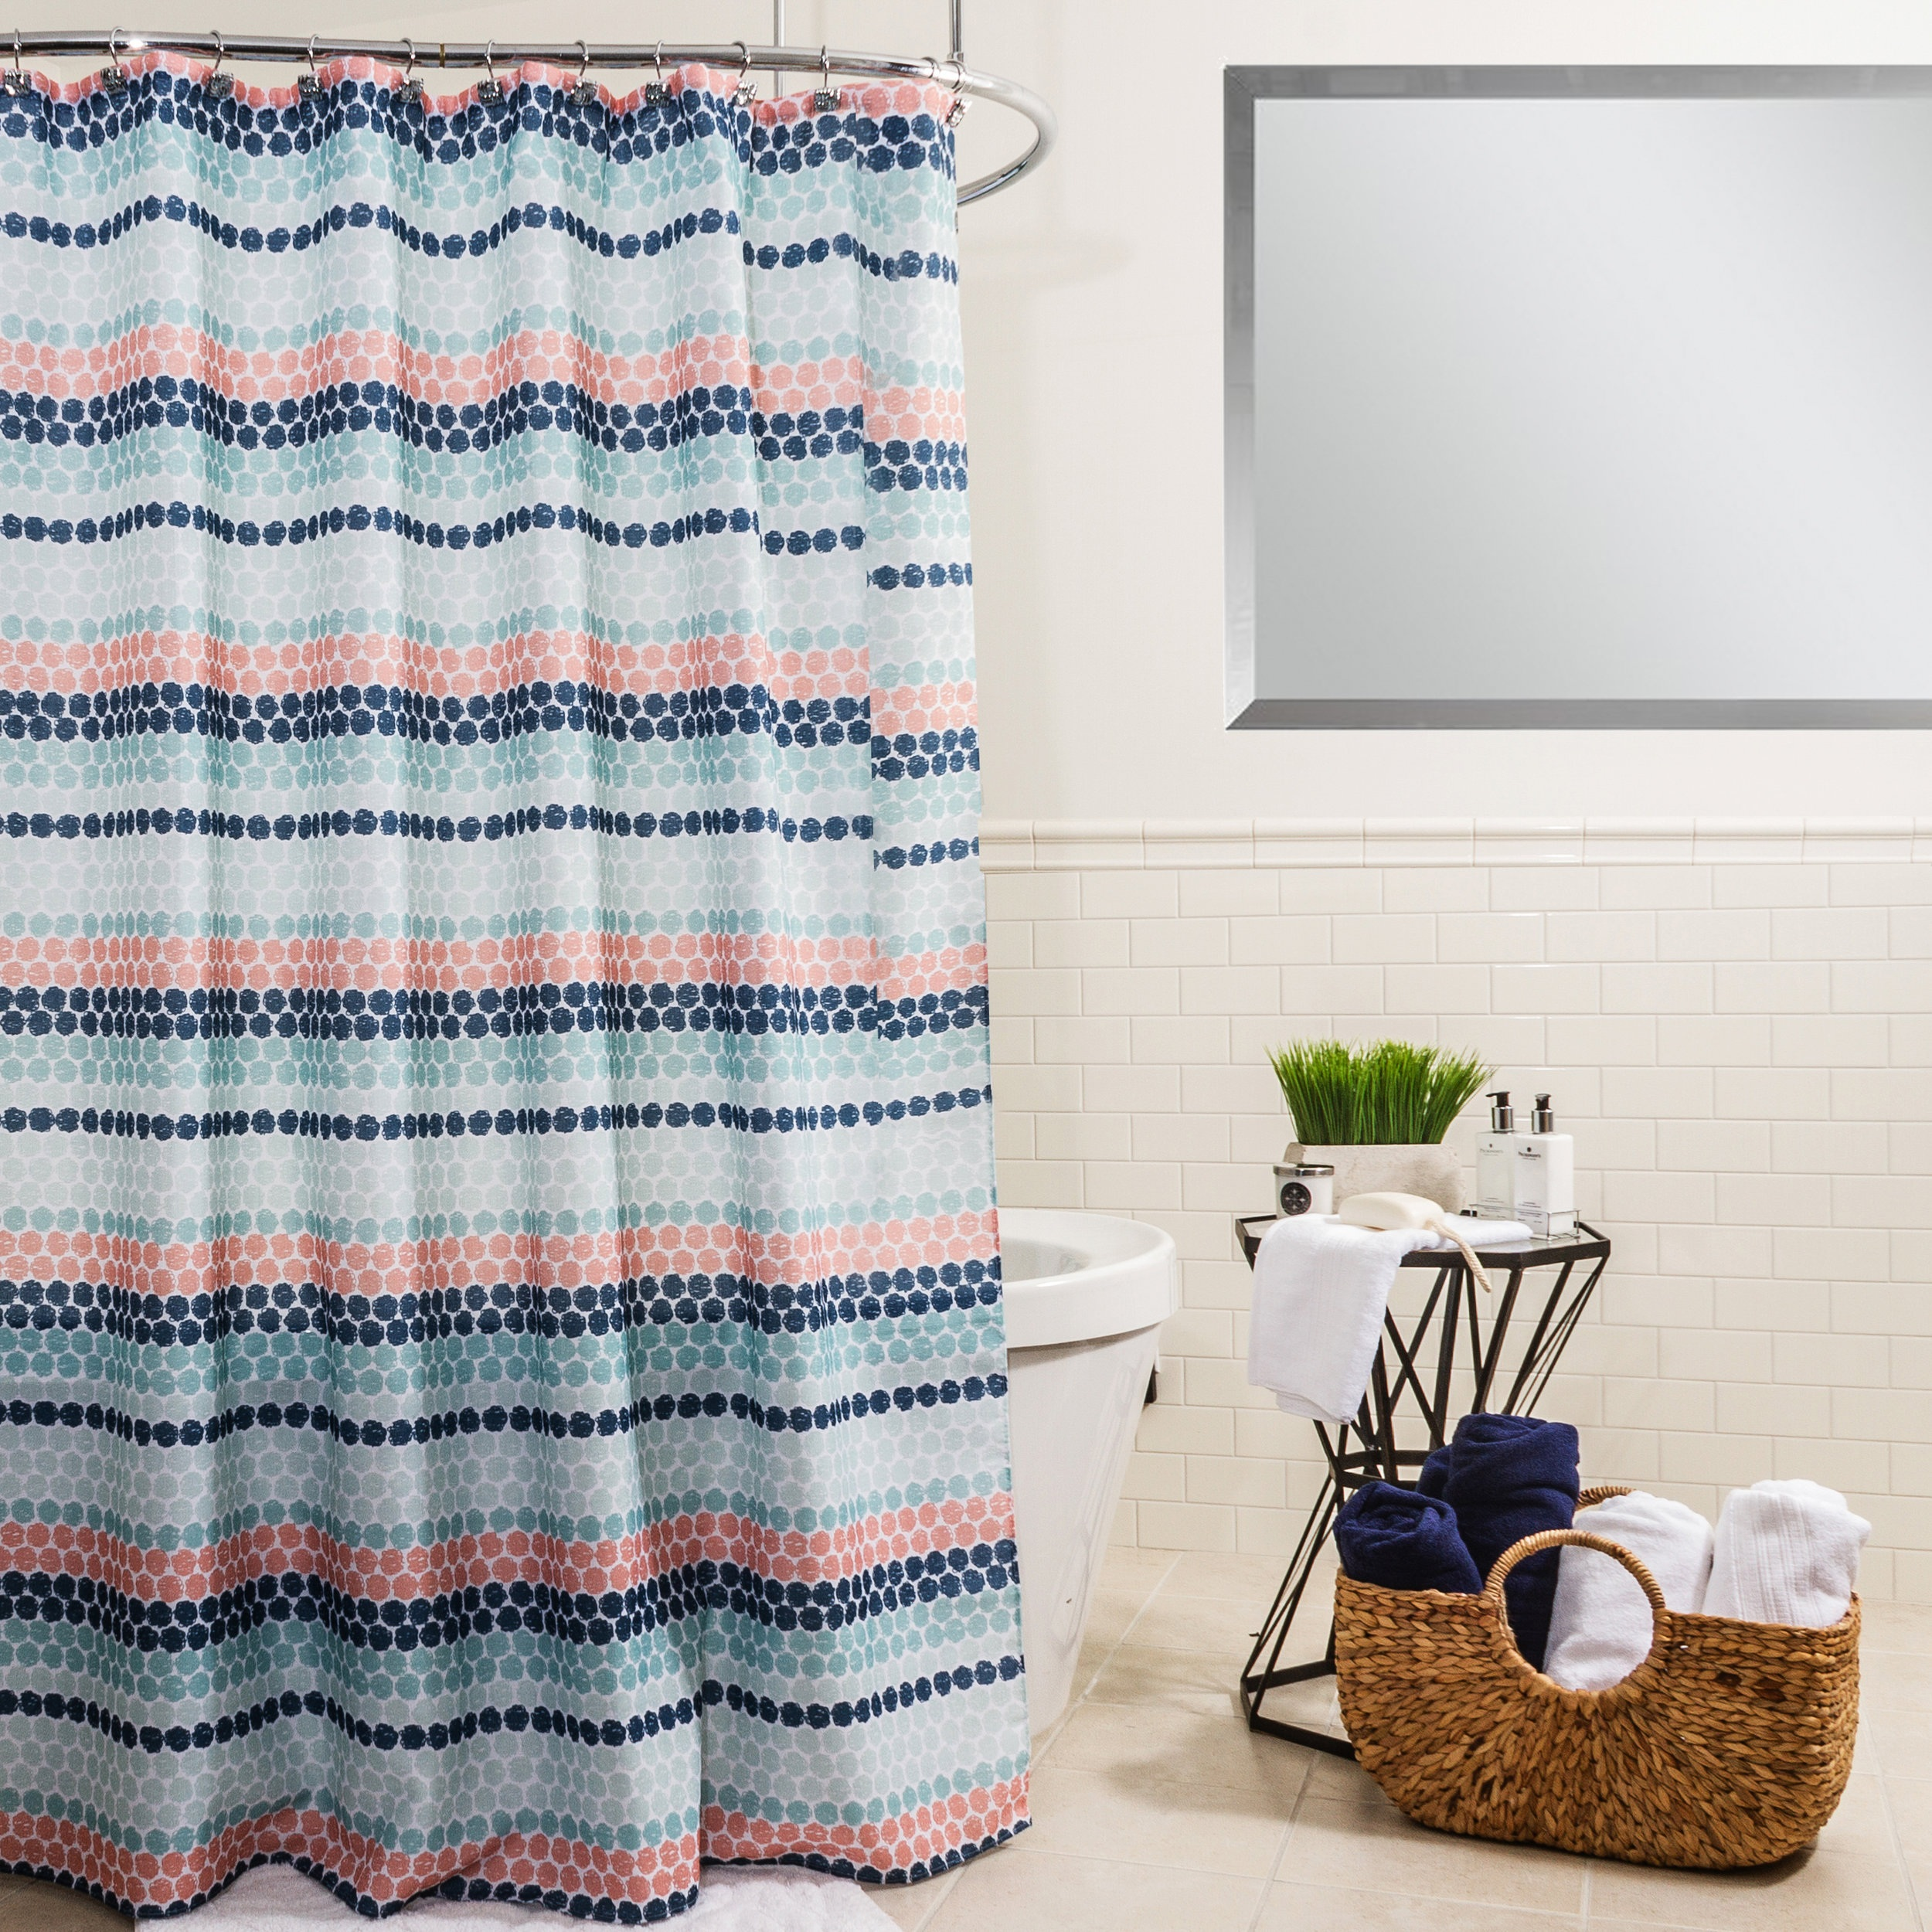 Shower Curtains and Accessories - Explore shower add-ons